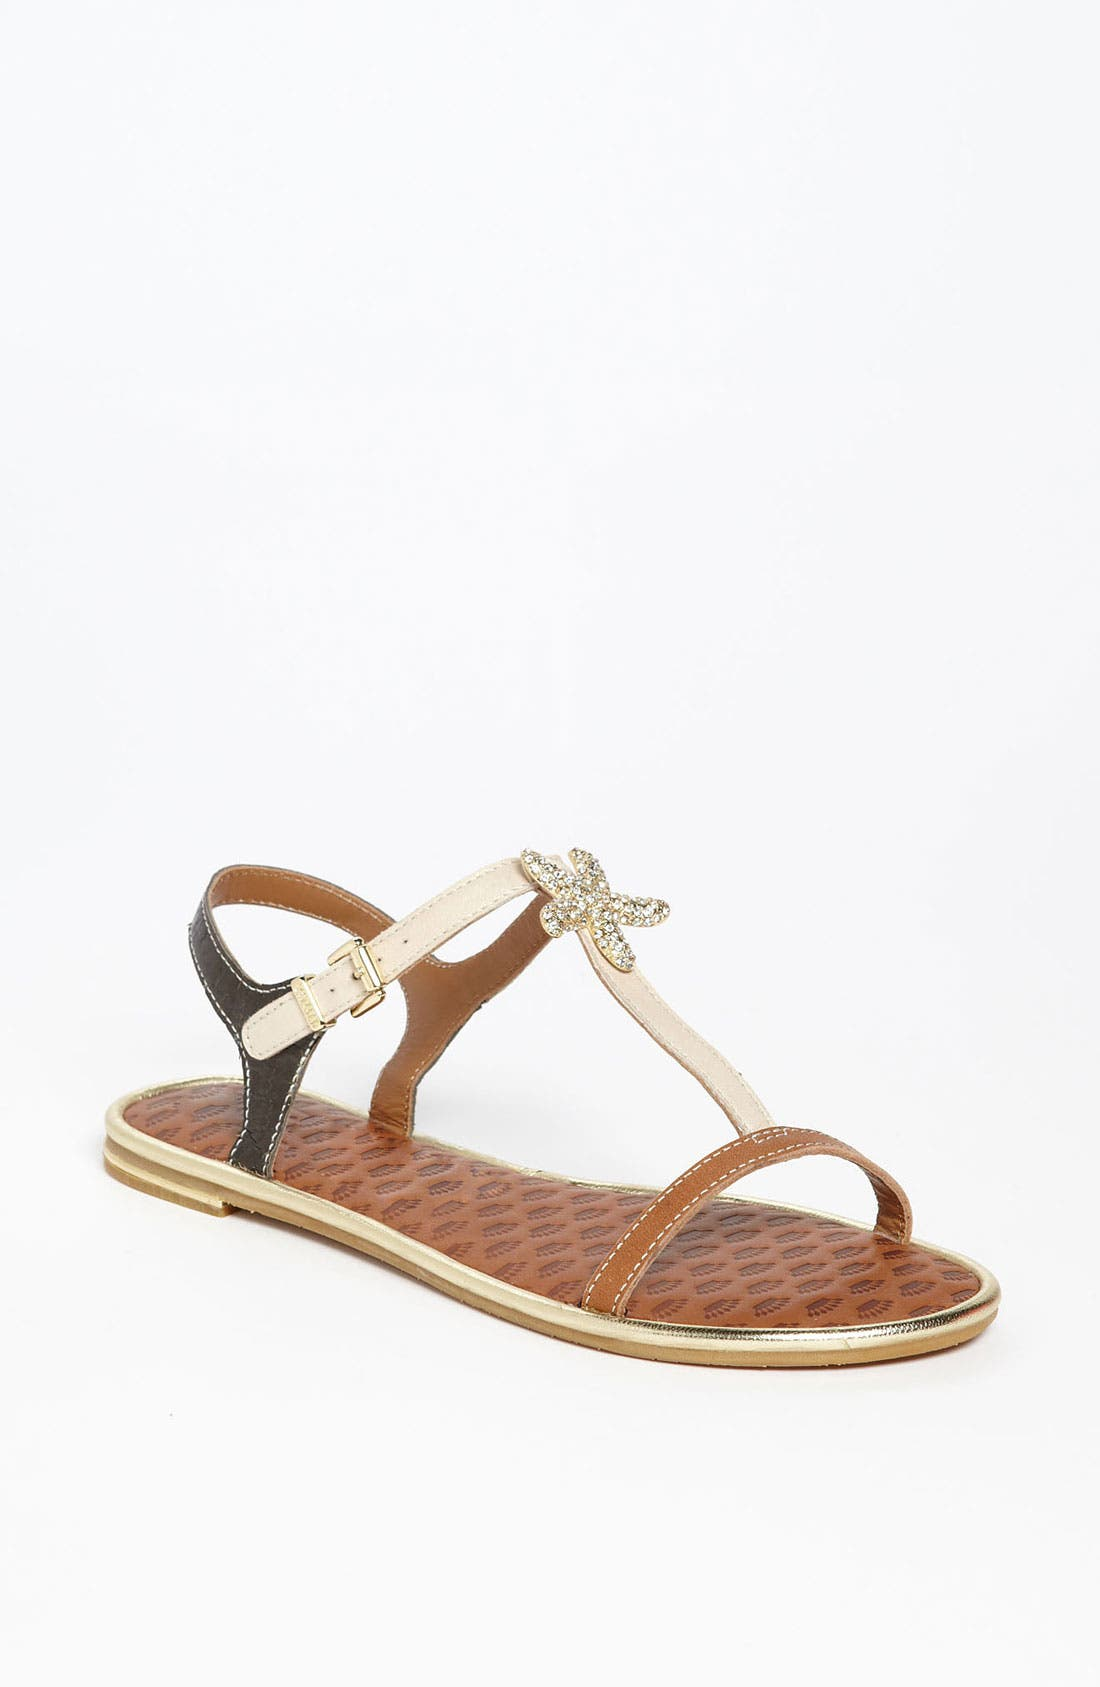 Alternate Image 1 Selected - Juicy Couture 'Alana' Sandal